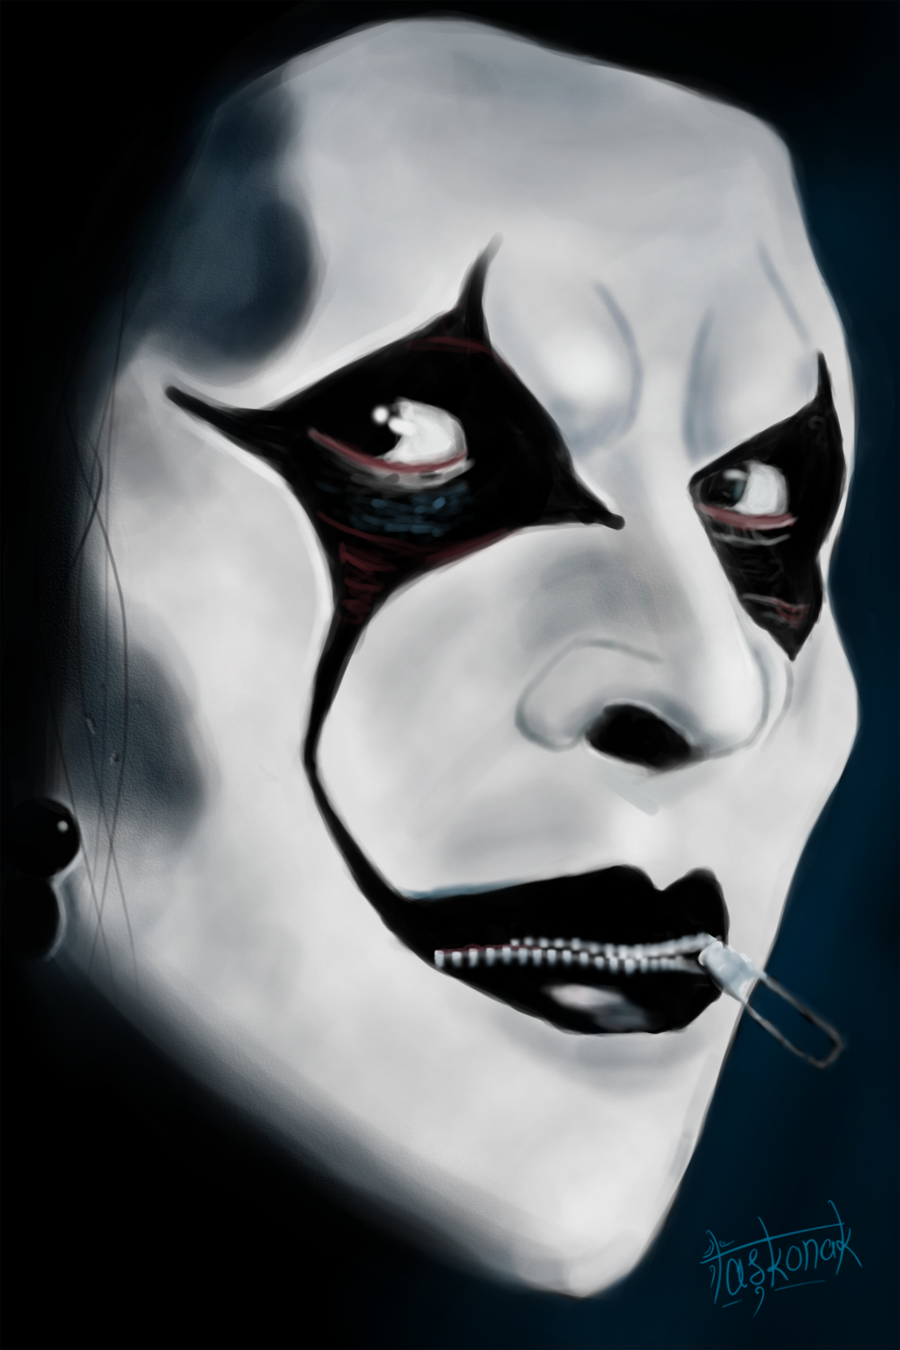 Jim Root of Slipknot by dtaskonak on DeviantArt